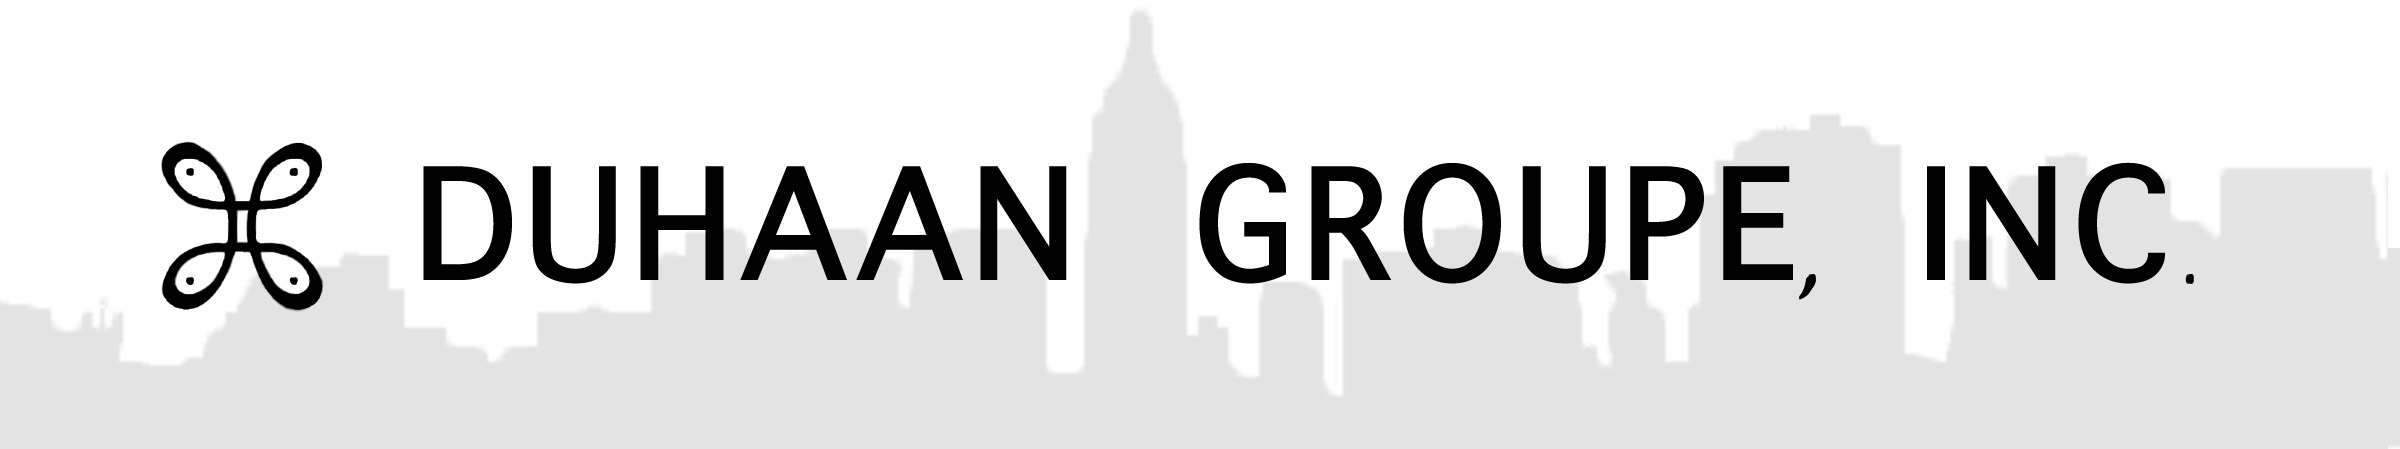 duHaan Group